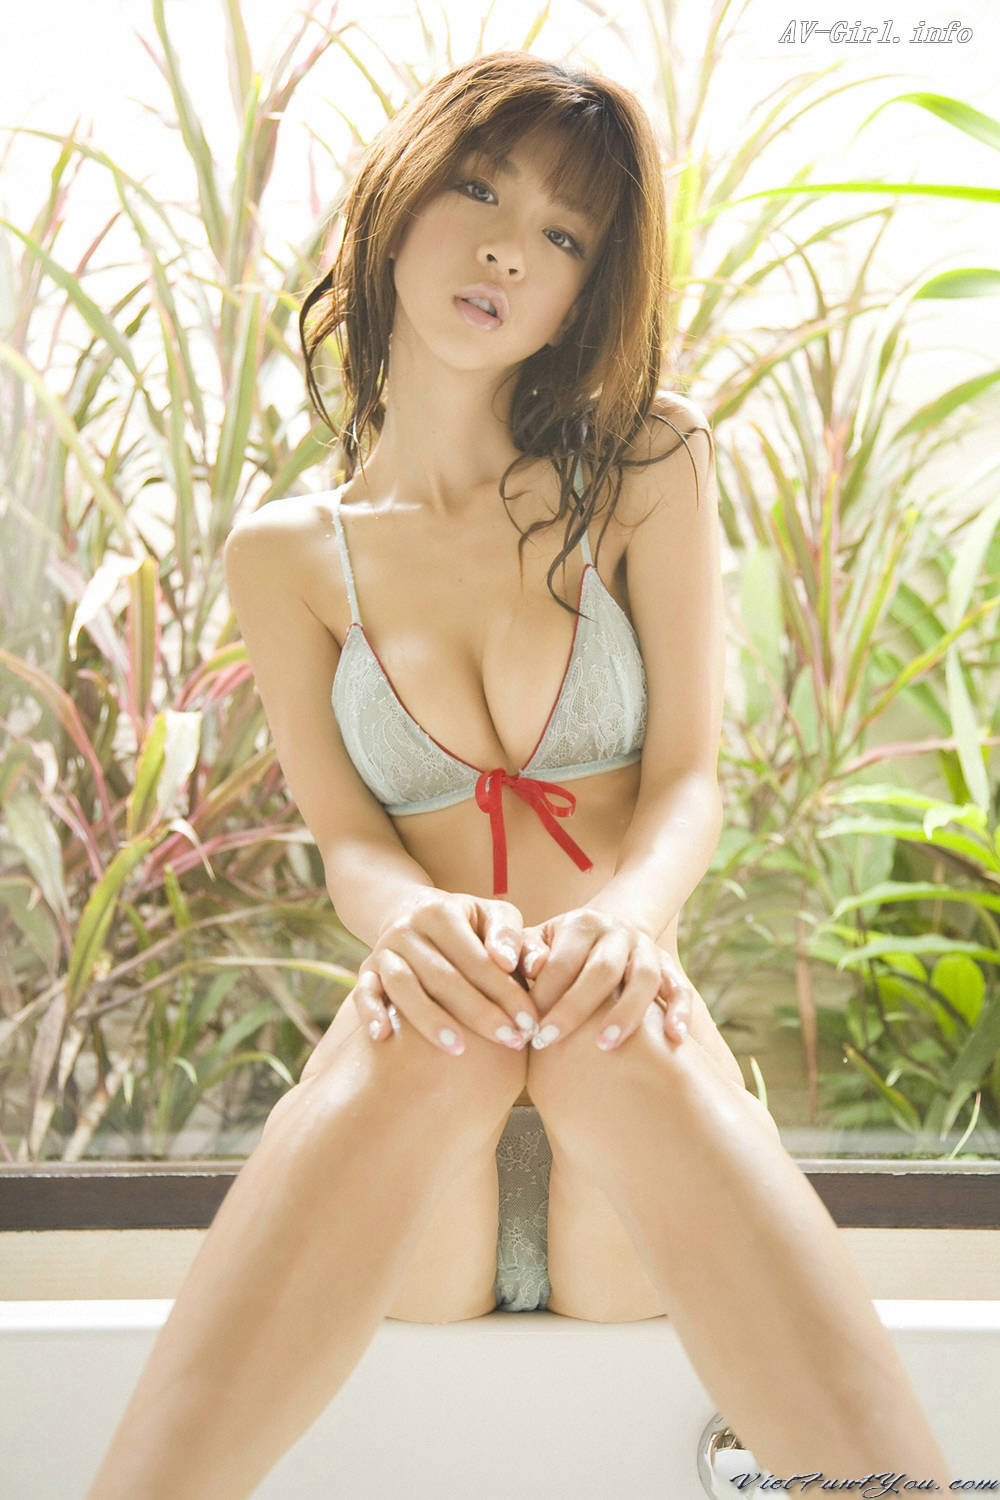 Can not hot japanese woman sex apologise